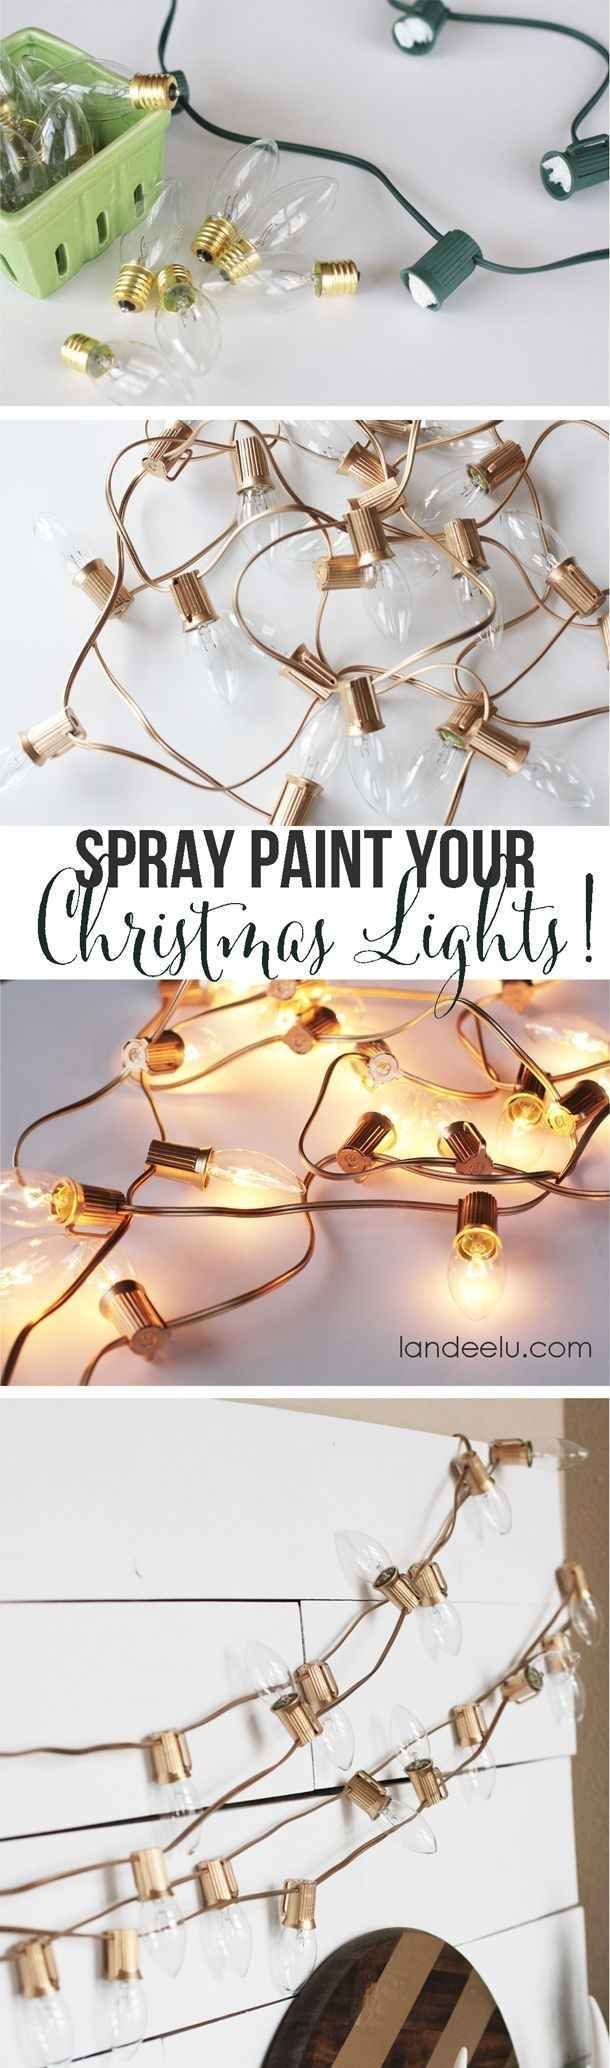 Christmas lights don't have to be relegated to the holidays if you paint them gold. holiday hacks, holiday ideas #lifehack